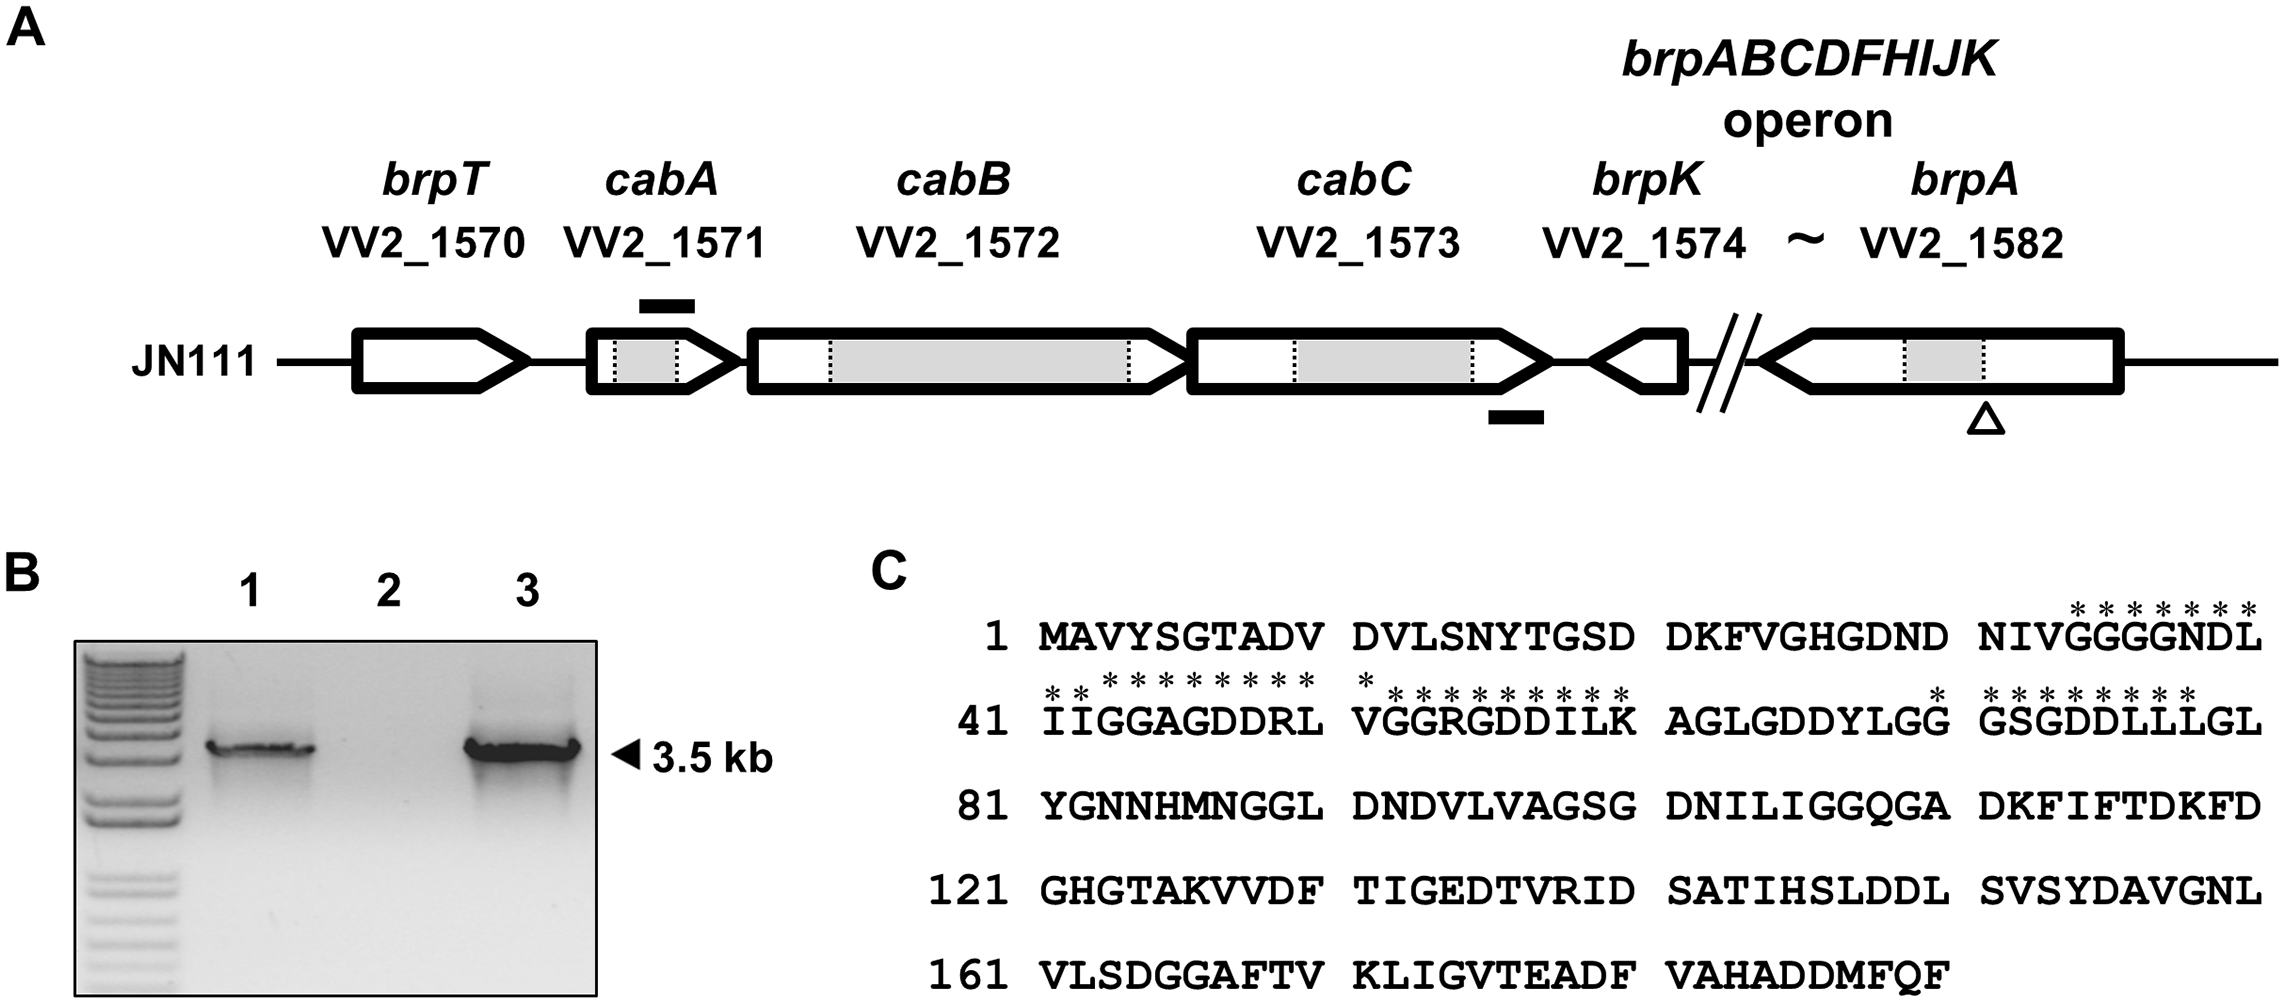 Genetic organization of the <i>cabABC</i> operon and amino acid sequence of CabA.